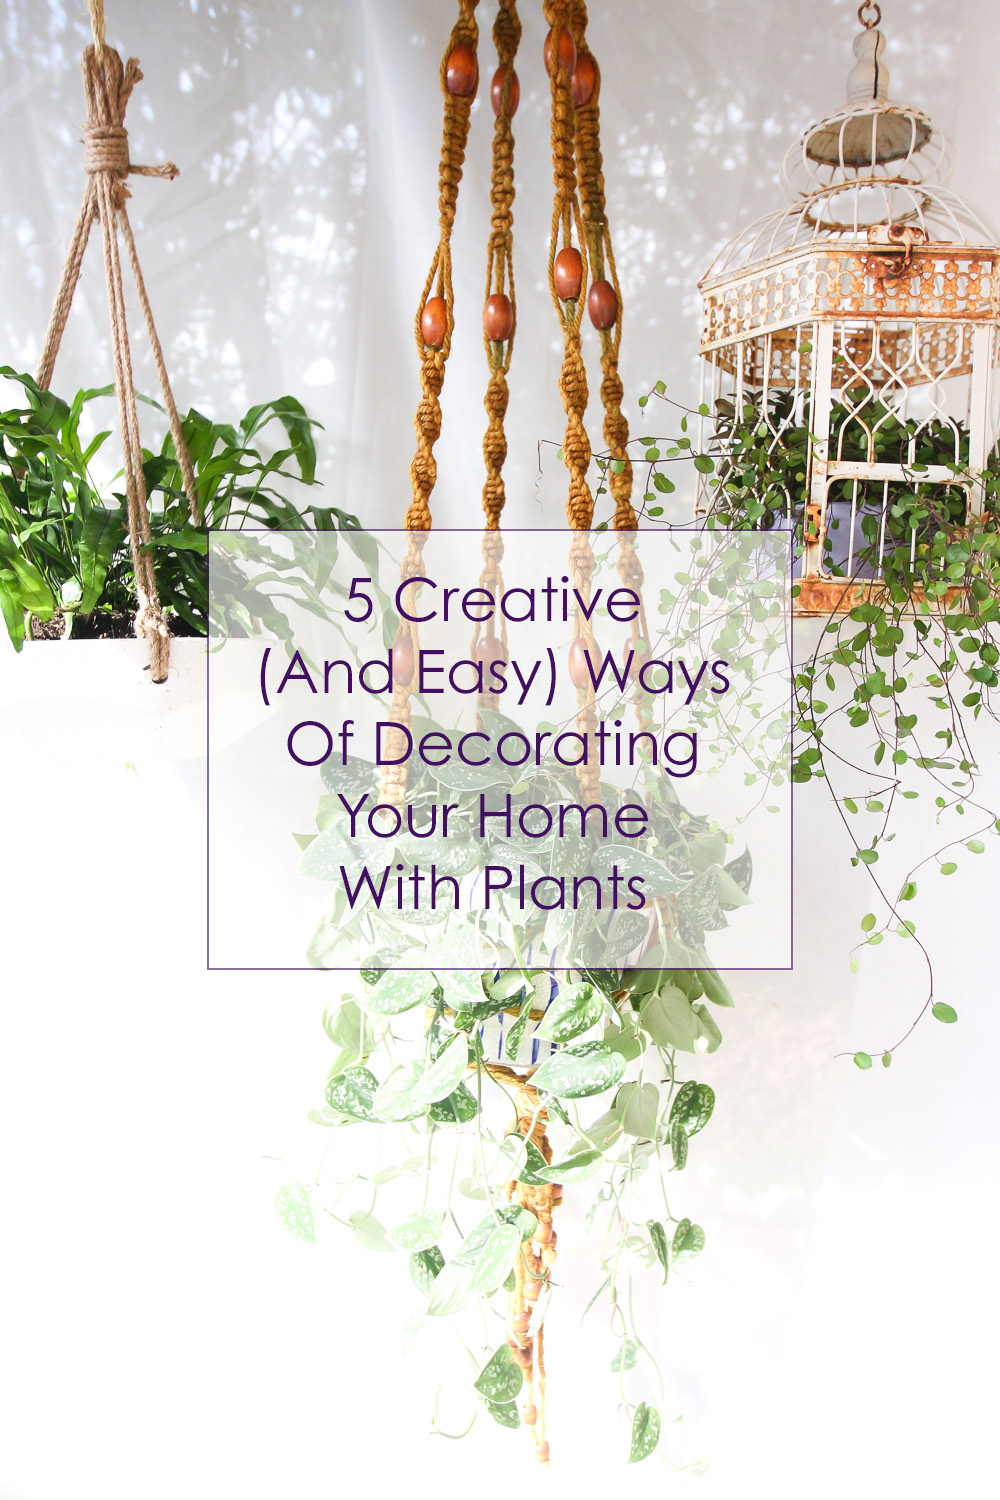 5 Creative (And Easy) Ways Of Decorating Your Home With Plants